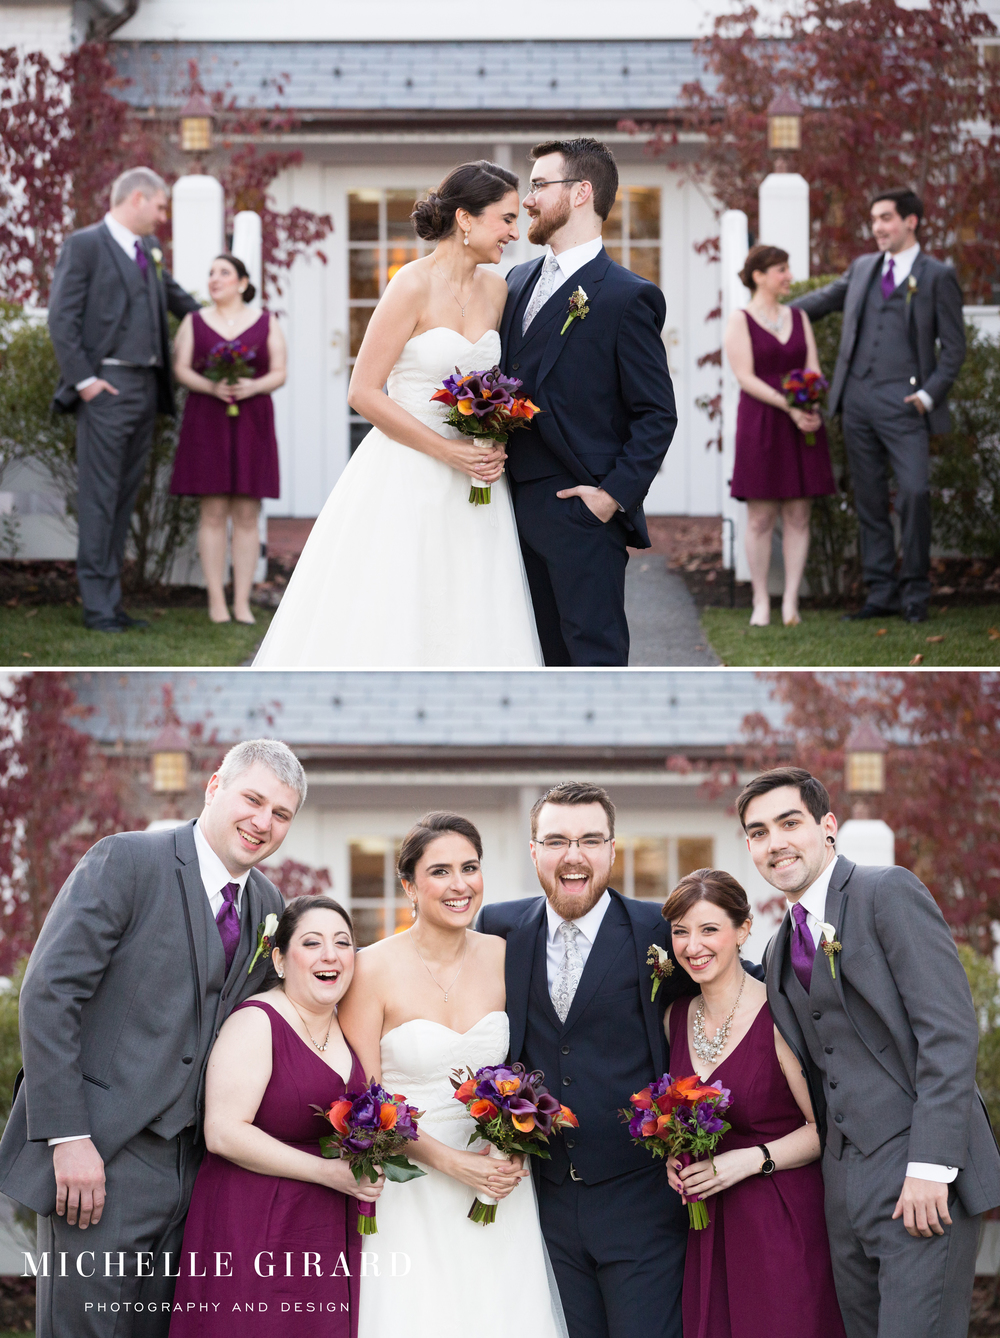 LordJefferyInnWedding_AmherstMa_MichelleGirardPhotography22.jpg